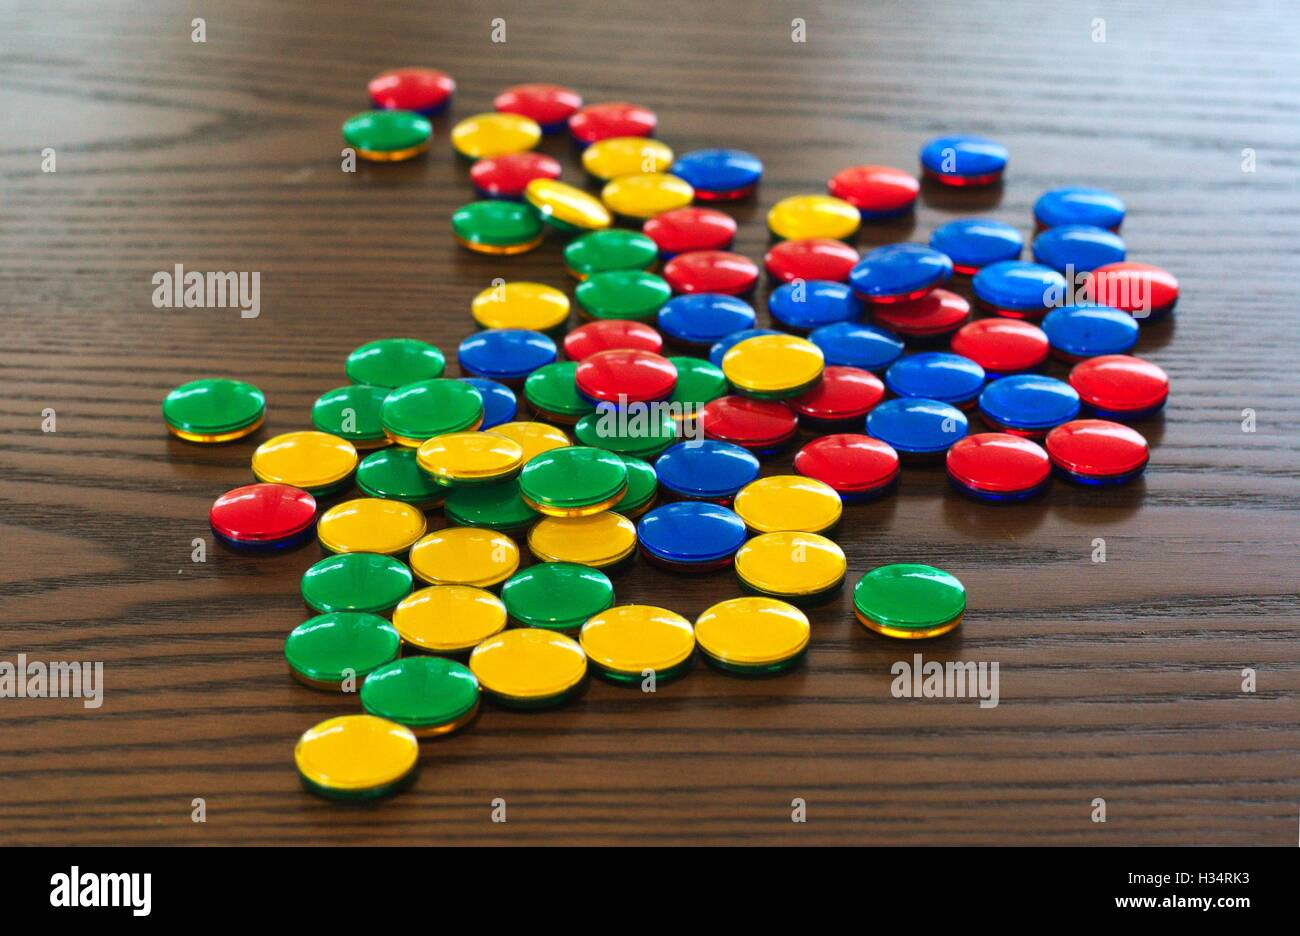 Brightly colored game counters scattered across a fake wood table top. - Stock Image